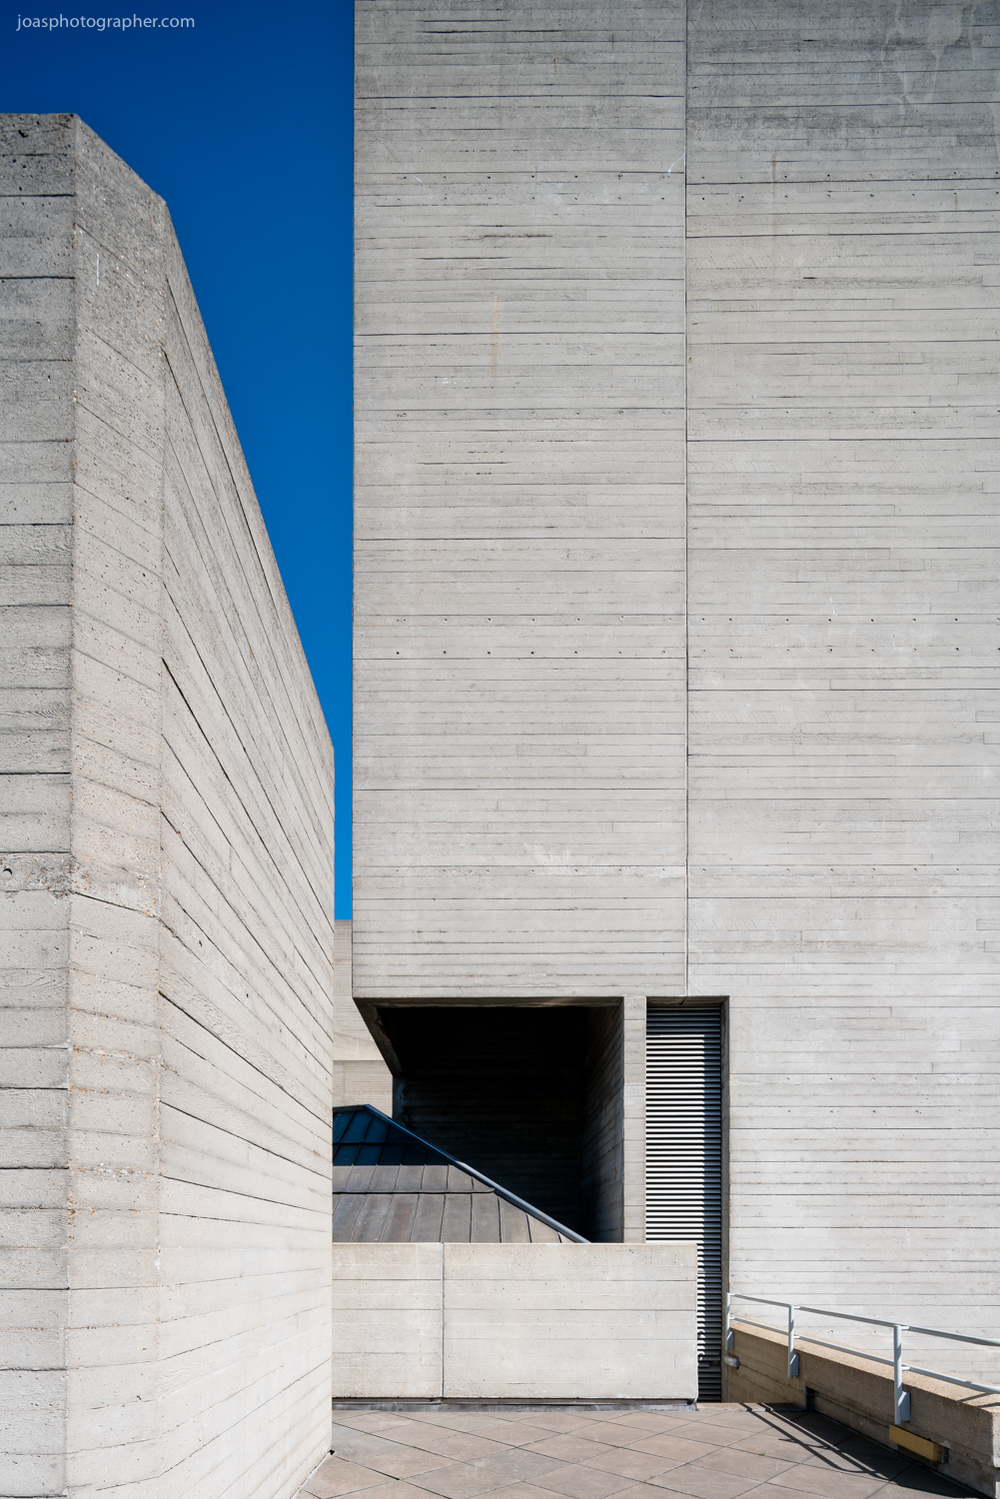 National Theatre by Joas Souza Photographer